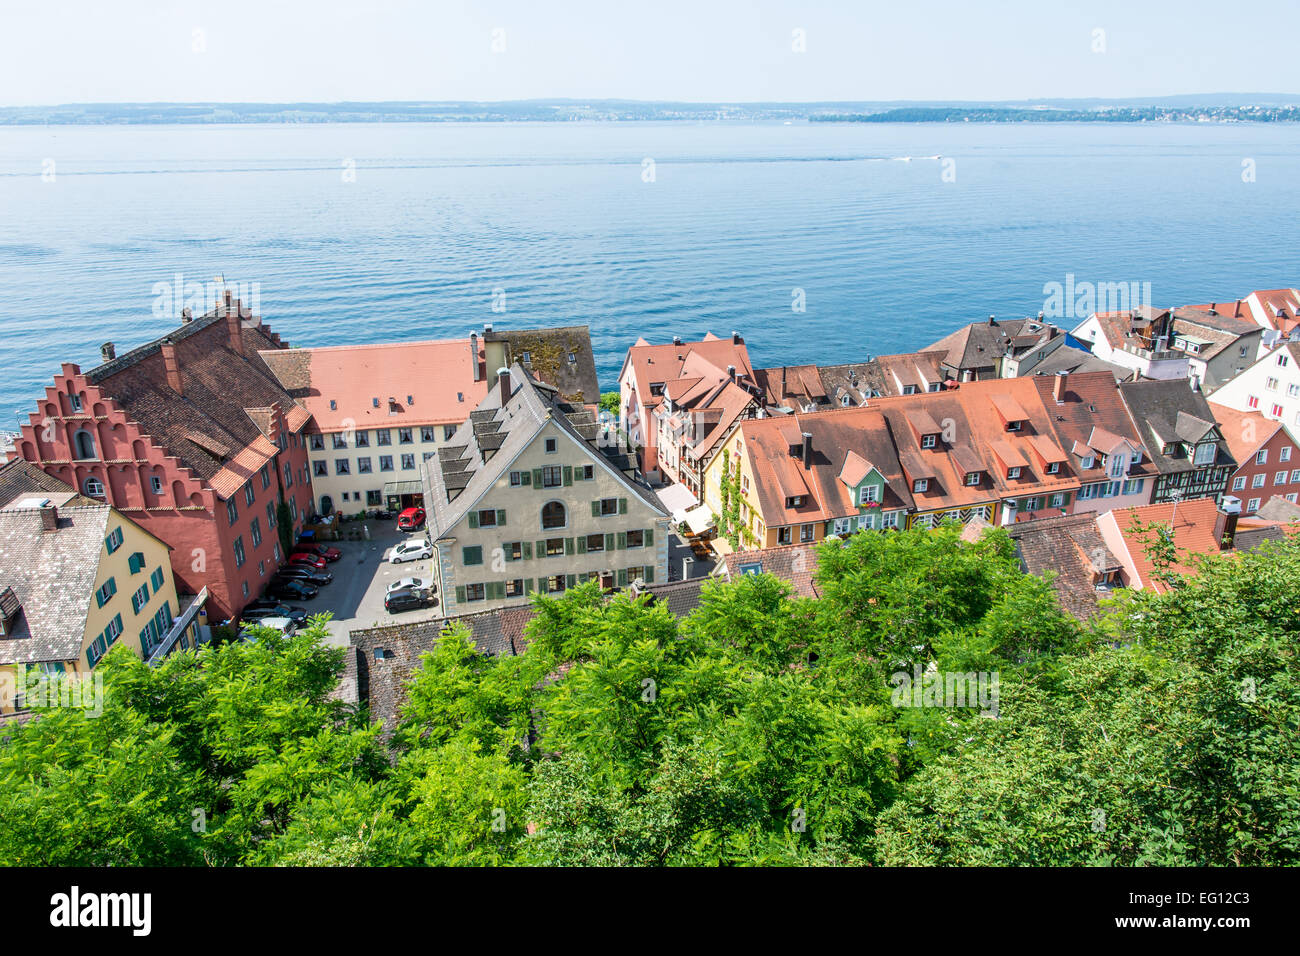 View over the city of Meersburg at the Bodensee (lake constance) in Germany Stock Photo